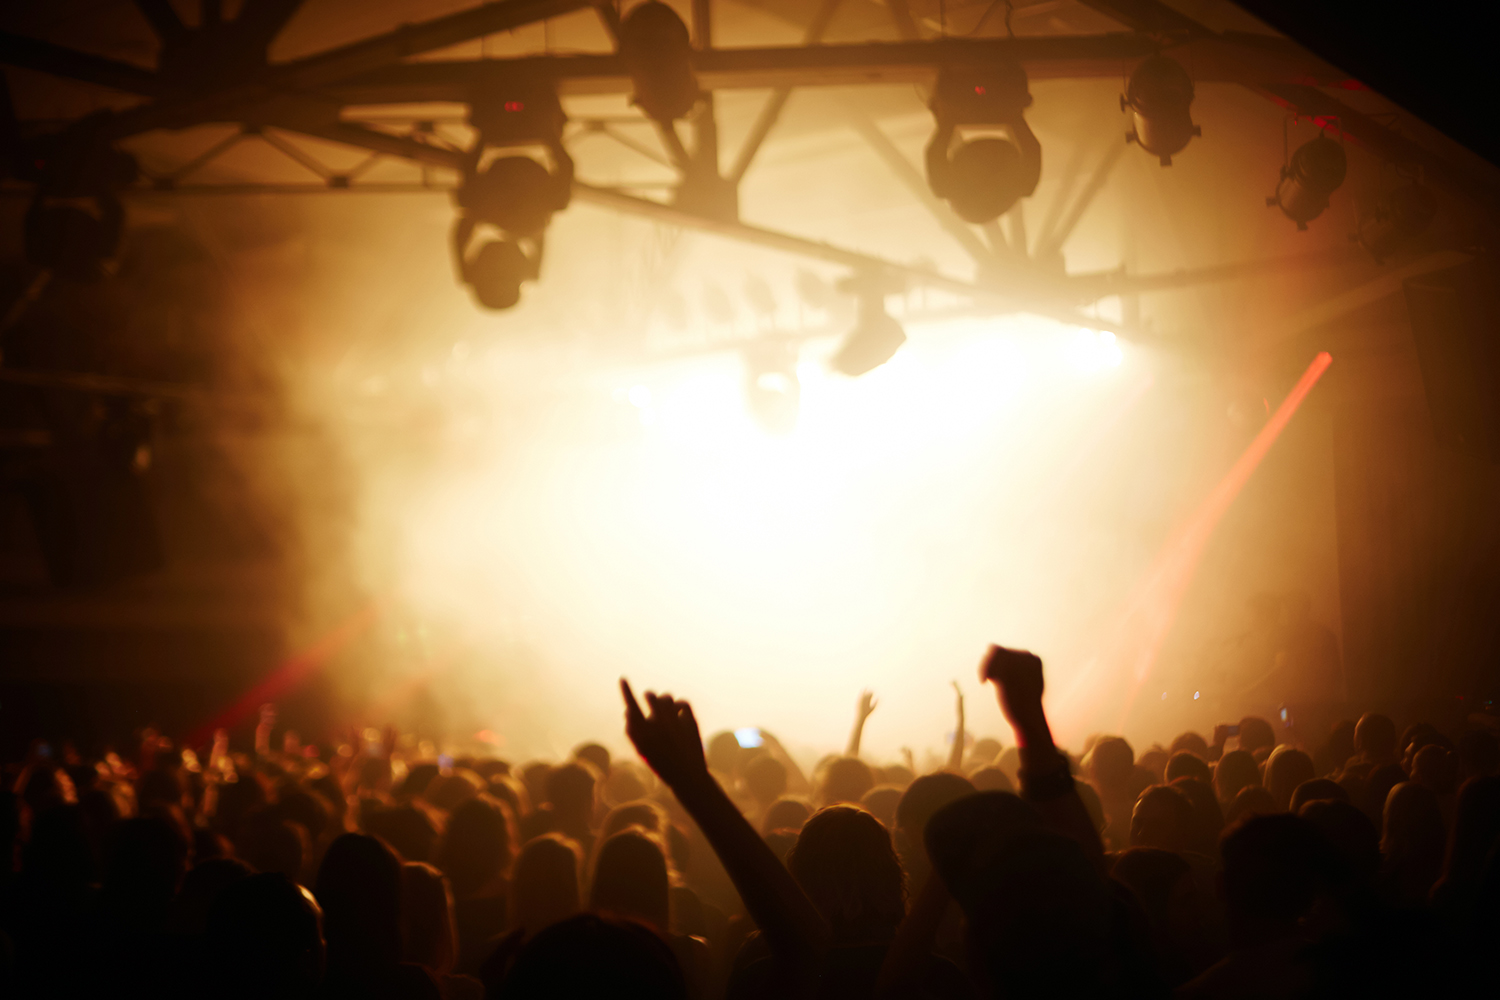 Crowd of people enjoying concert in night club